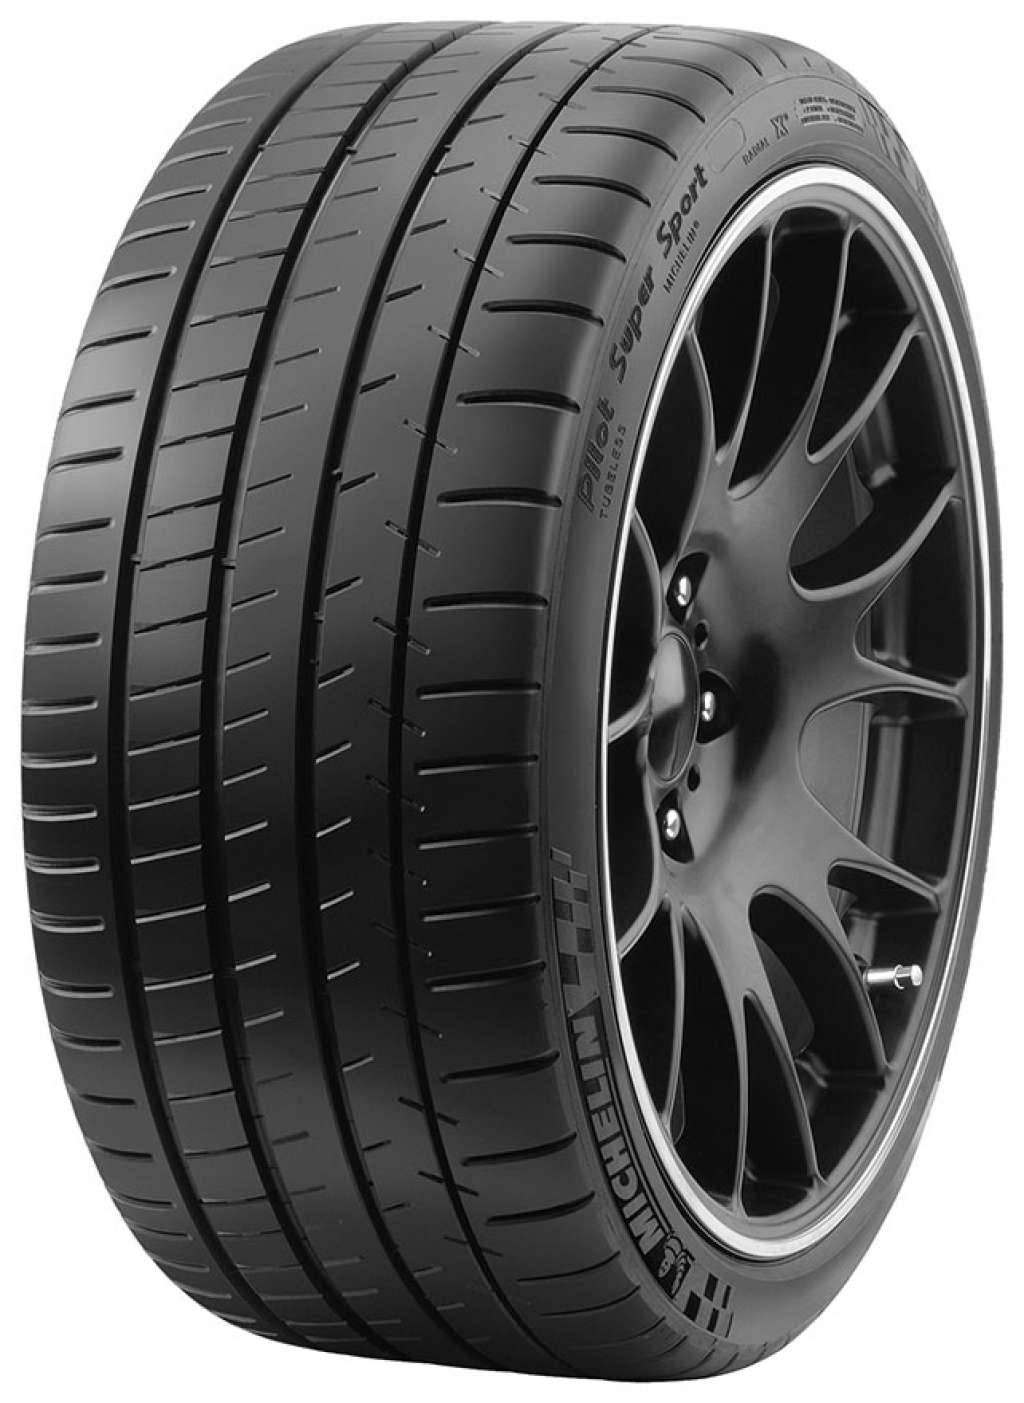 MICHELIN Pilot Super Sport 275/40 R19